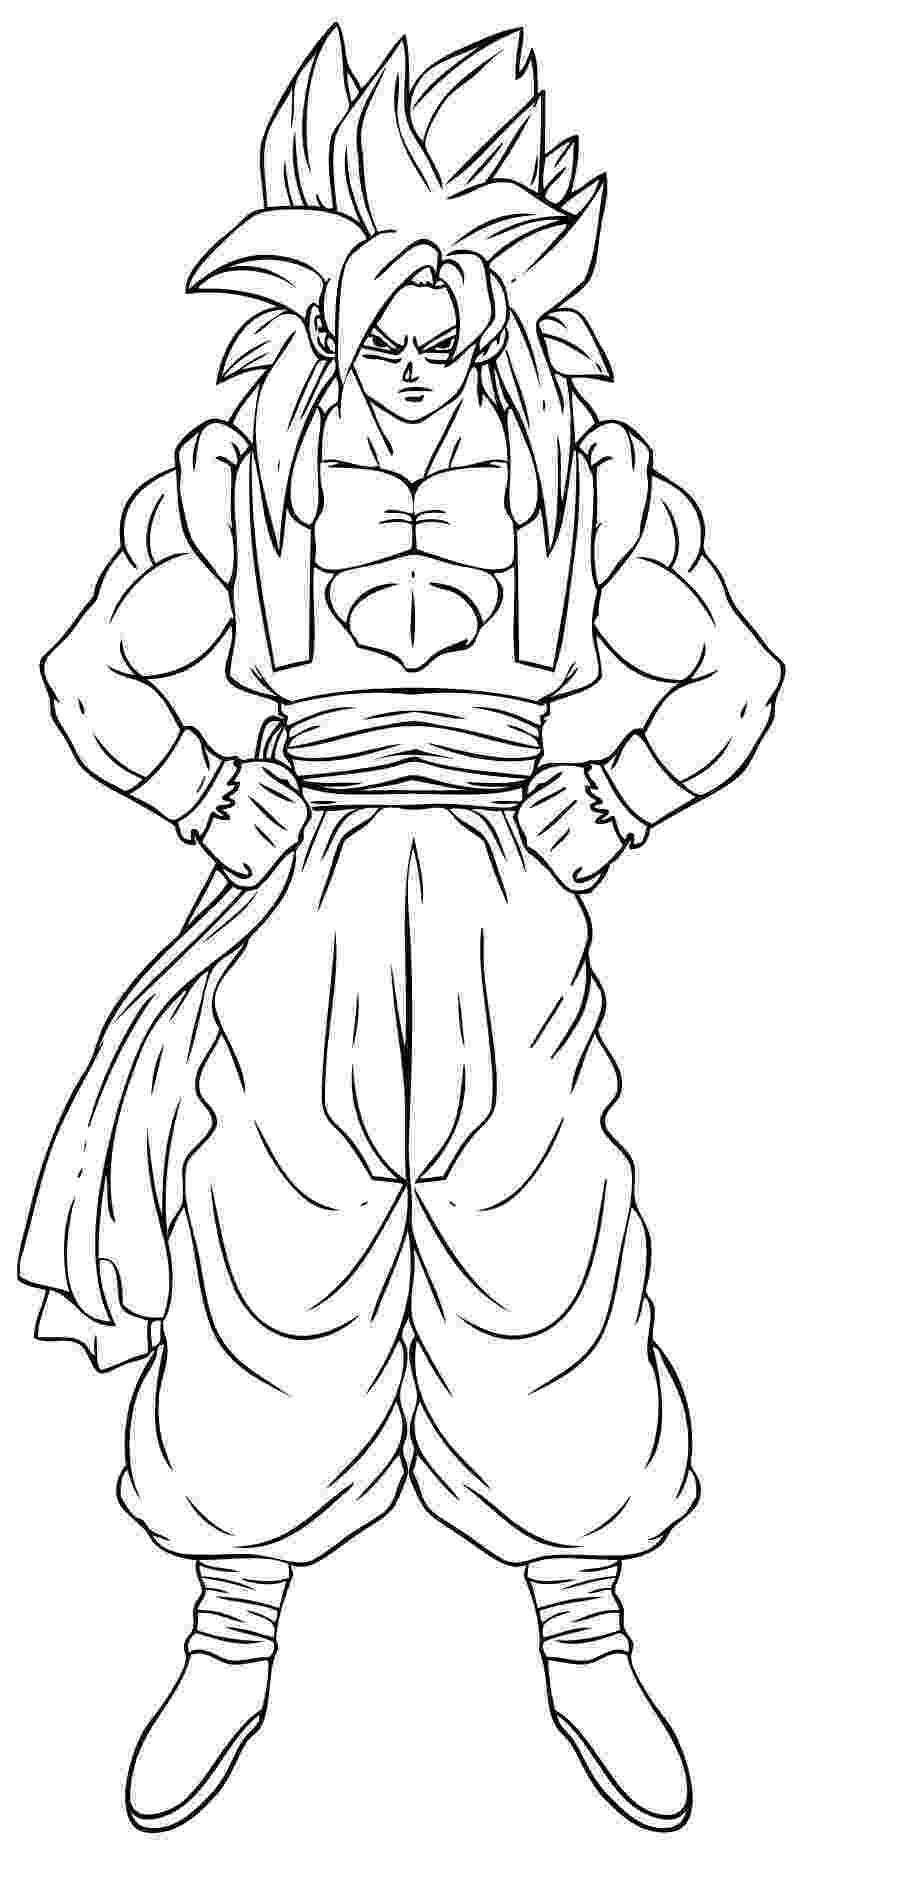 printable dragon ball z coloring pages free printable dragon ball z coloring pages for kids z printable ball pages dragon coloring